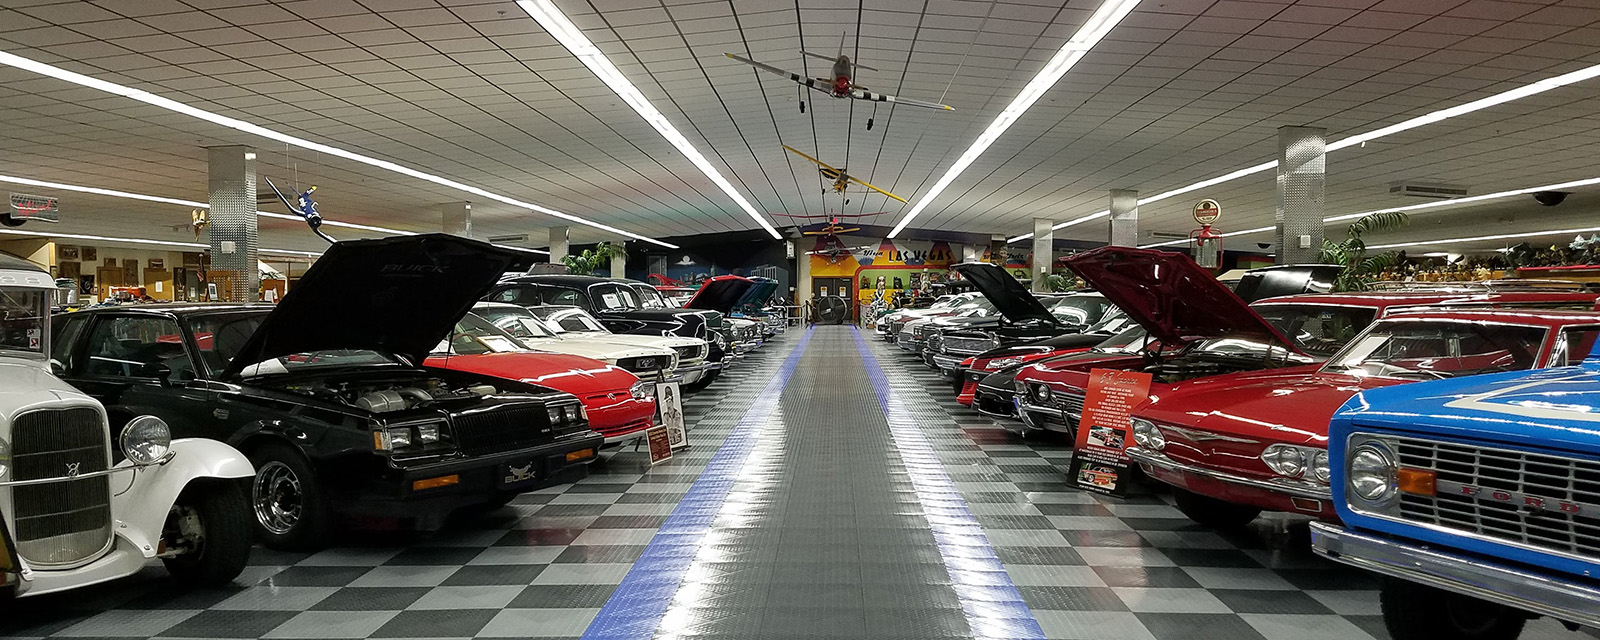 Tallahassee Car Museum - Photos of Cars - How we helped